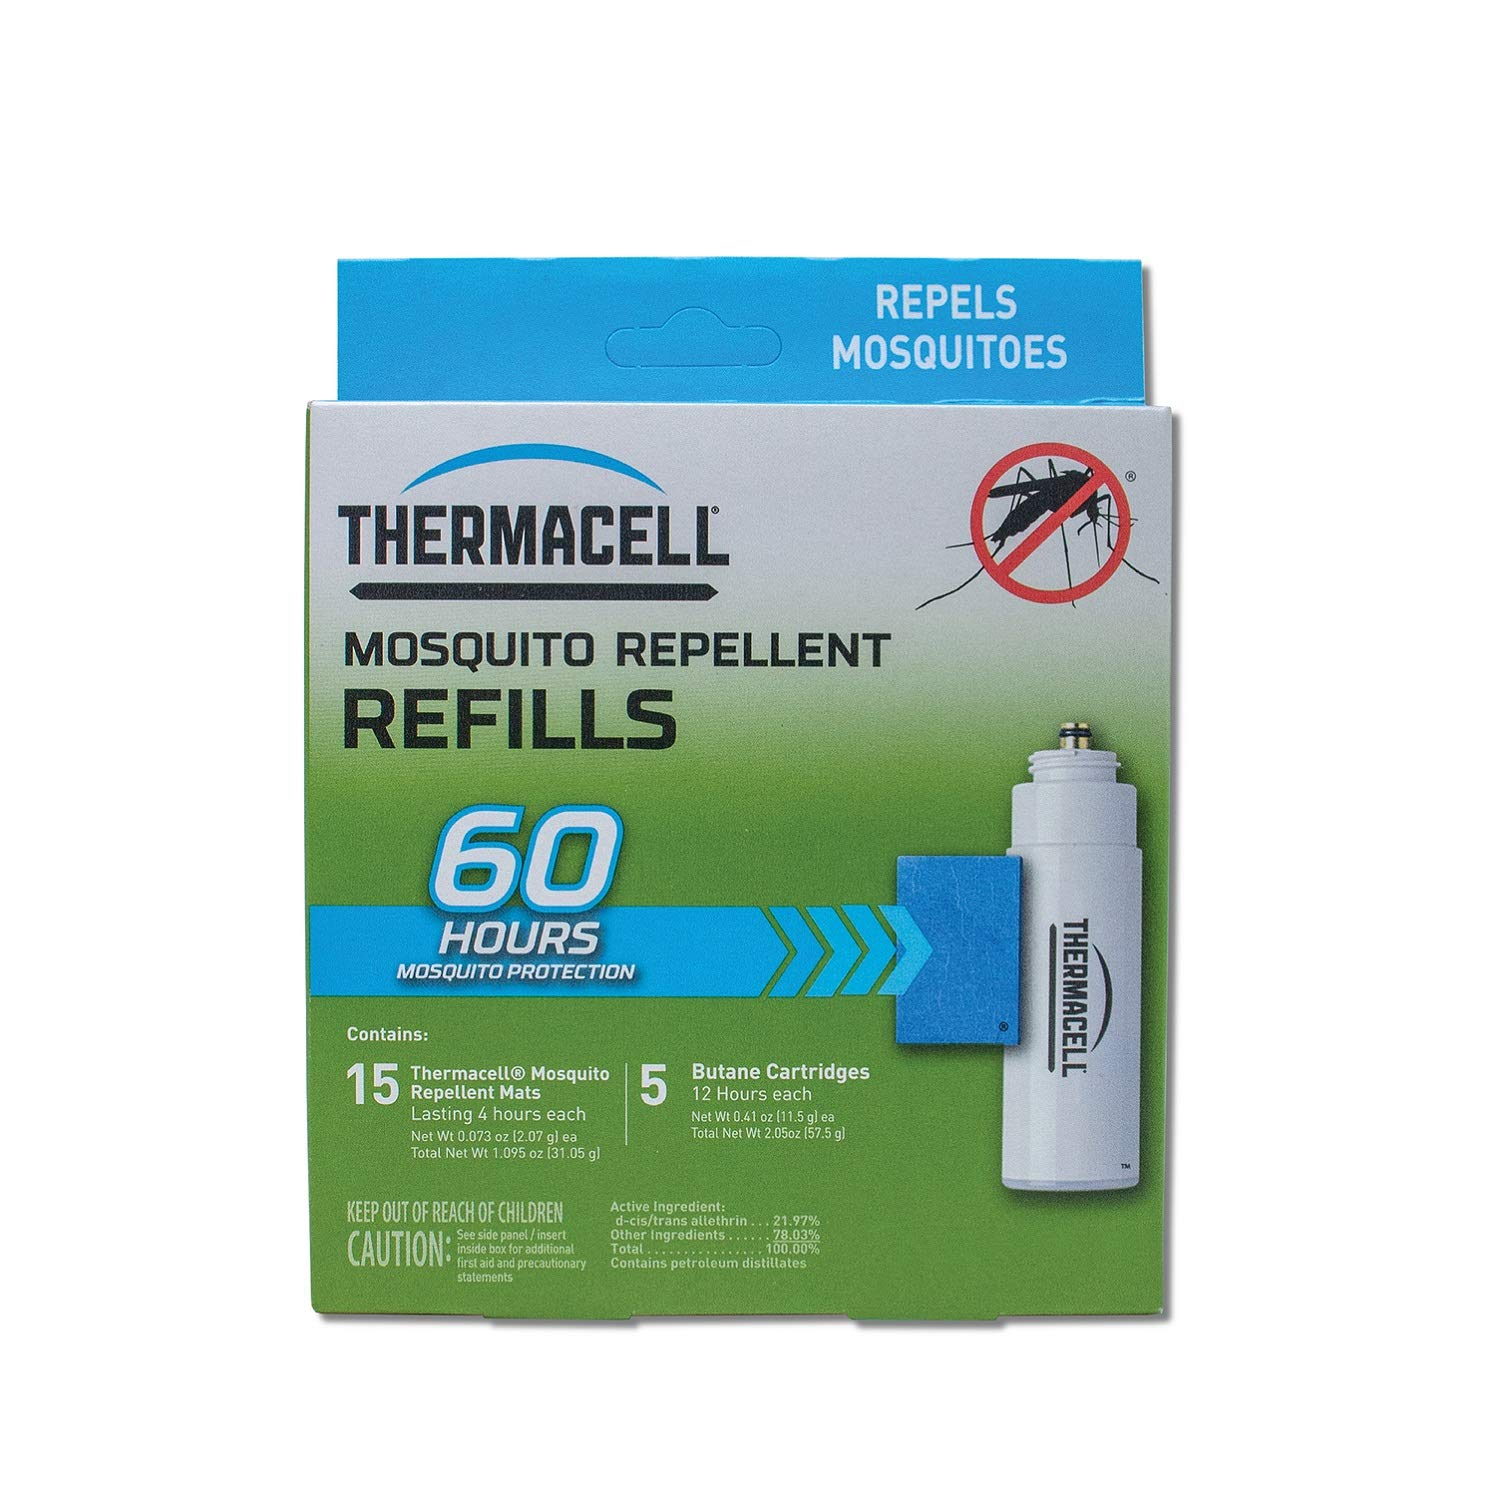 Thermacell Mosquito Repellent Refills, 60-Hour Pack; Contains 15 Repellent Mats, 5 Fuel Cartridges; Compatible with Any Fuel-Powered Thermacell Product; No Spray, Scent, Mess; 15 Ft Zone of Protection by Thermacell